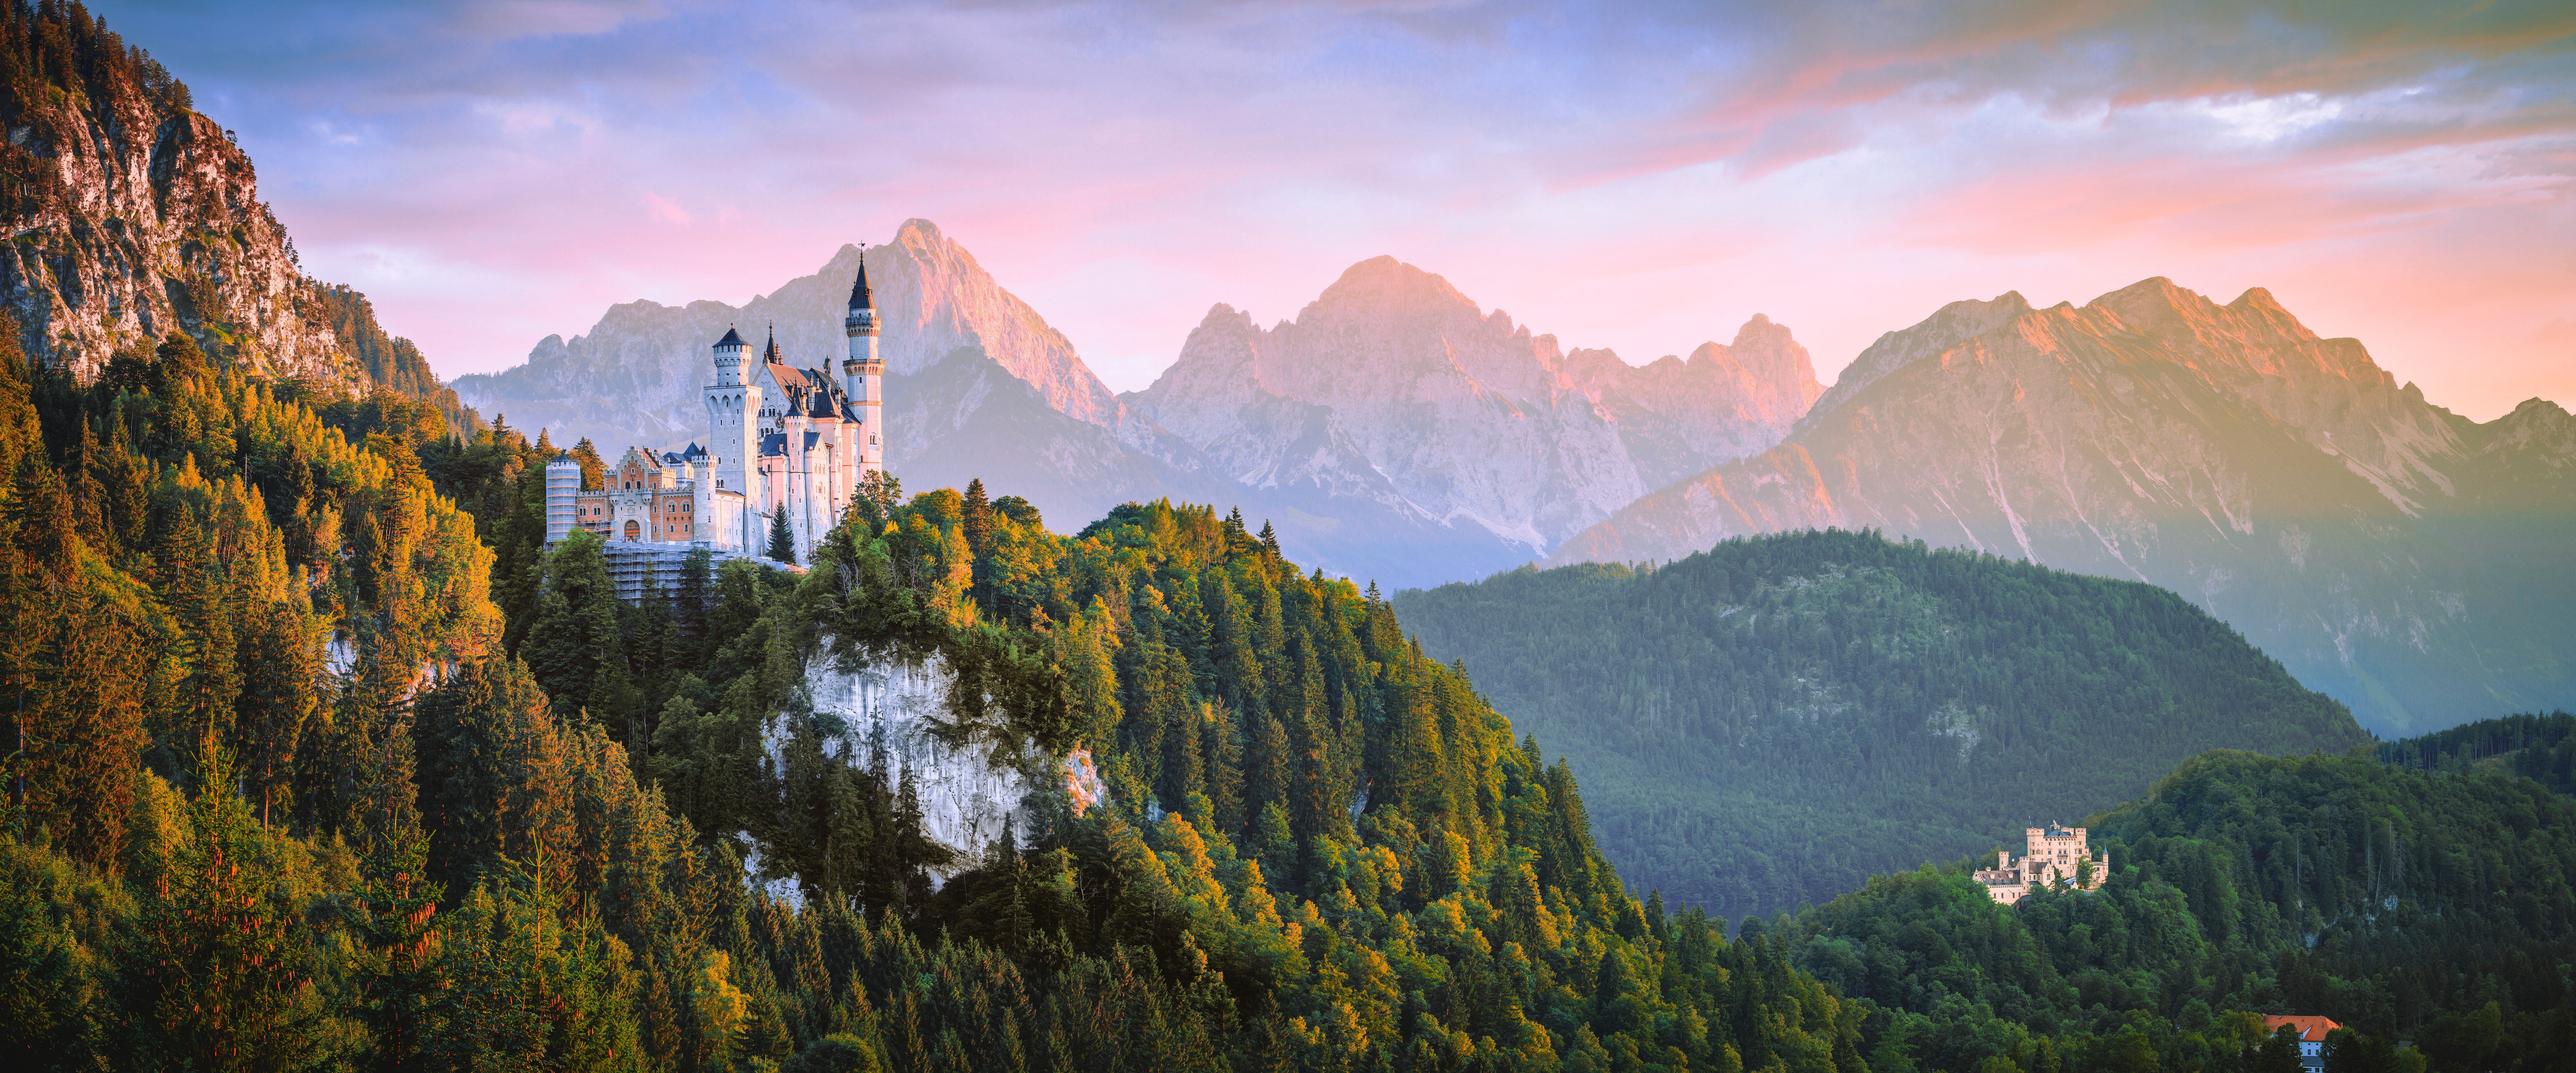 aerial-photo-of-castle-beside-forest-283